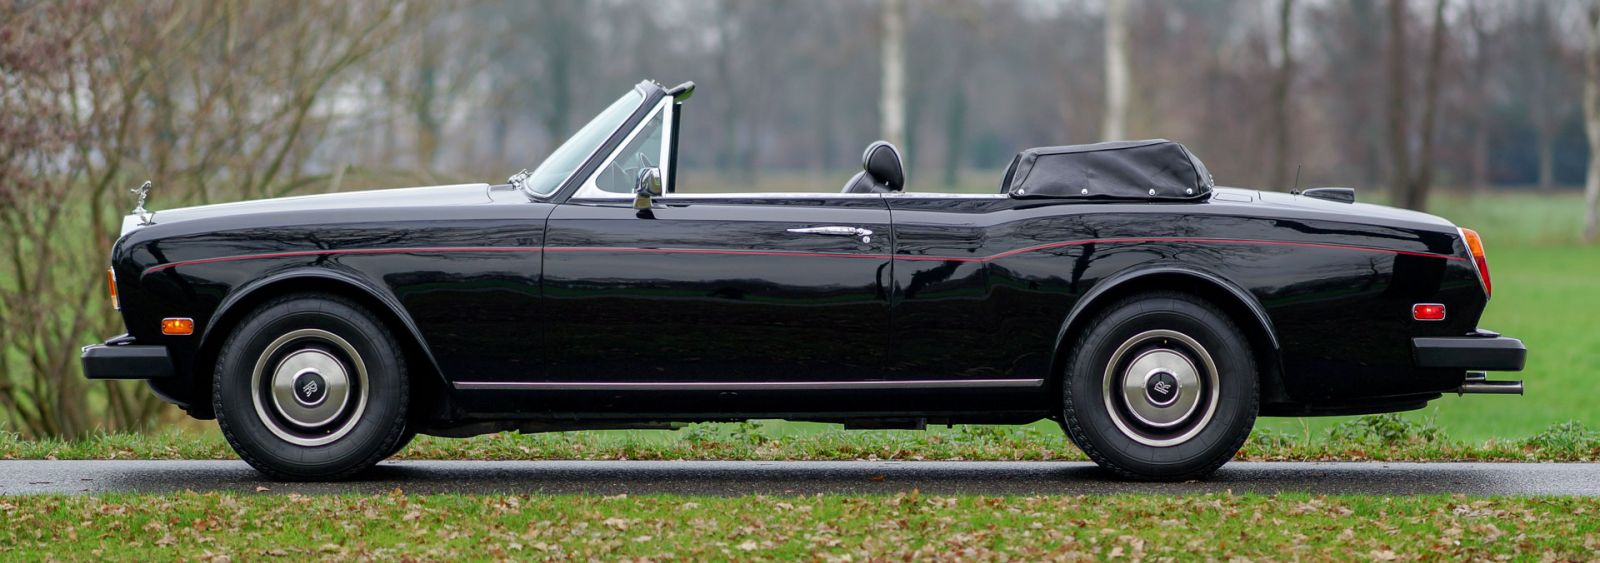 Rolls Royce Corniche Convertible 1981 Welcome To Classicargarage